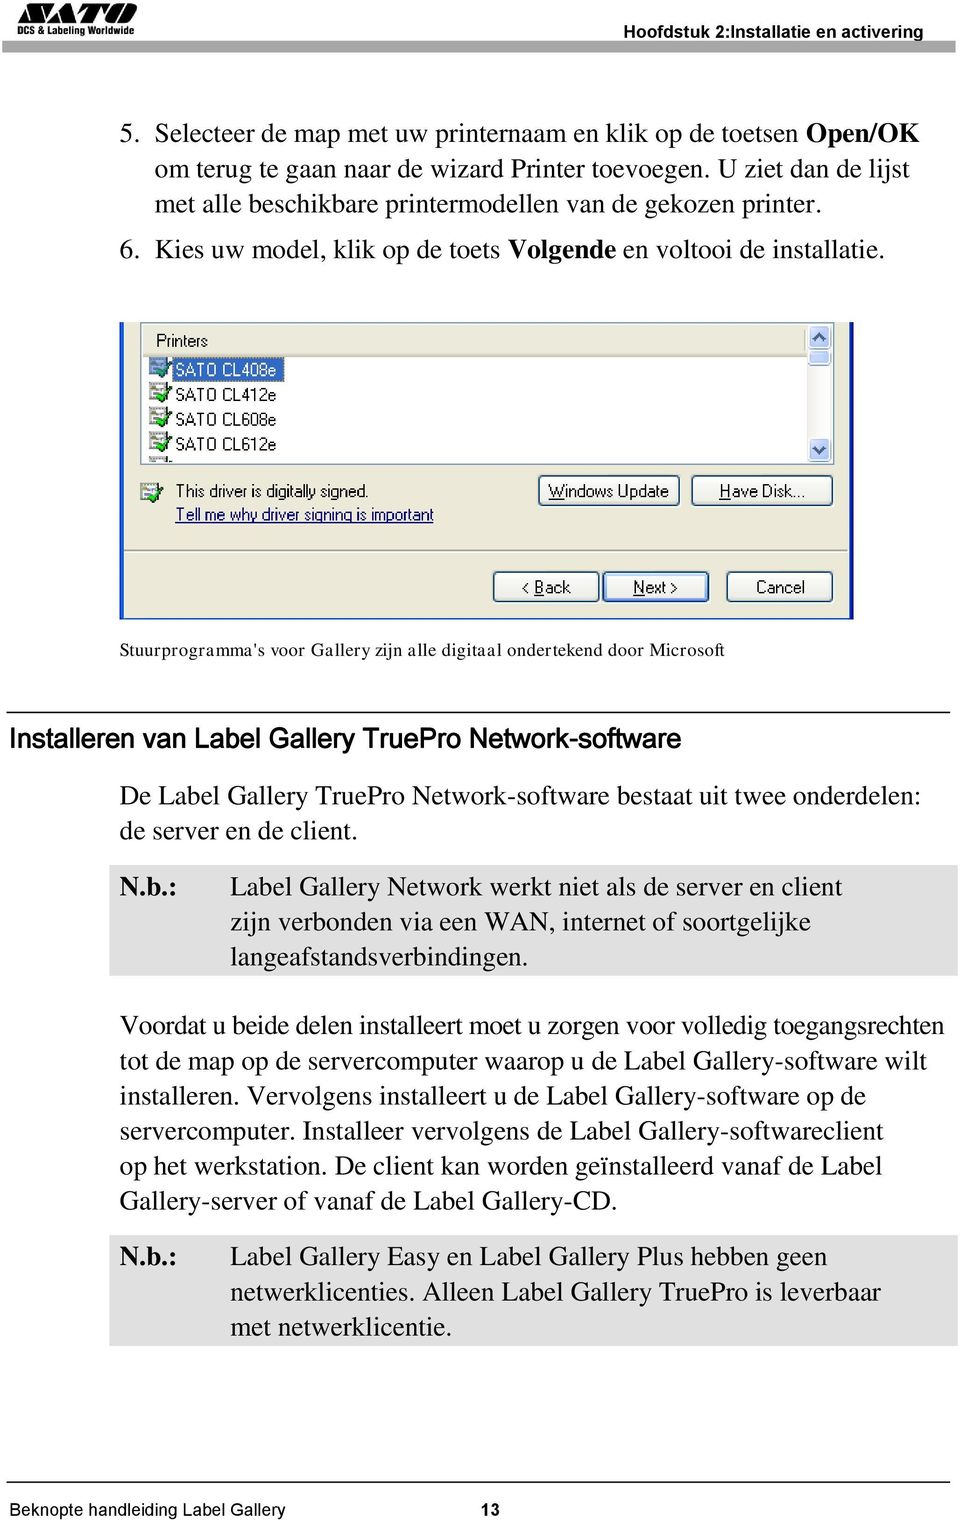 Stuurprogramma's voor Gallery zijn alle digitaal ondertekend door Microsoft Installeren van Label Gallery TruePro Network-software De Label Gallery TruePro Network-software bestaat uit twee